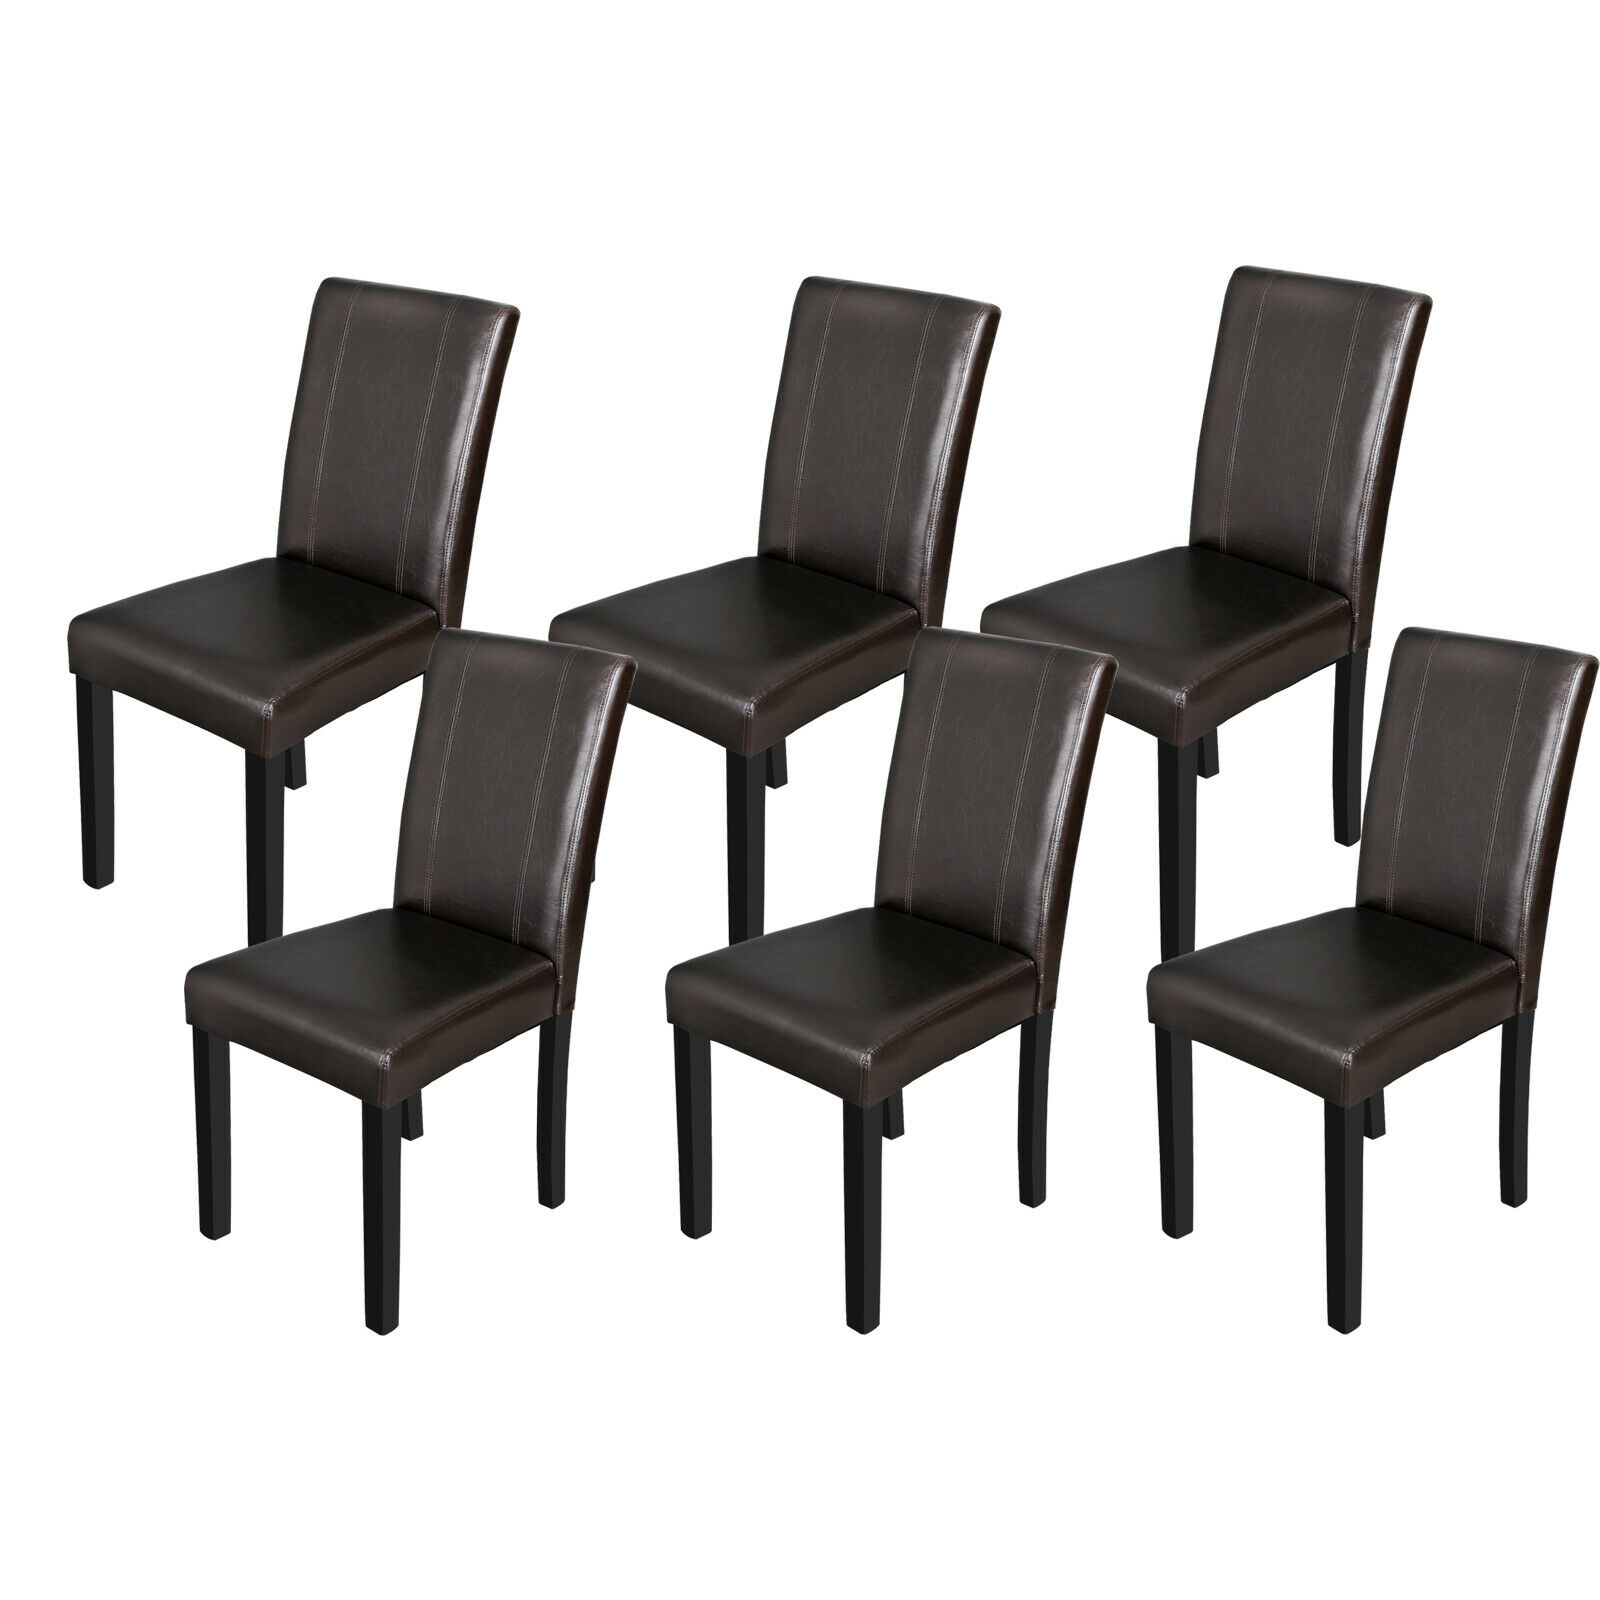 Dining Parson Room Chairs Kitchen Formal Elegant Leather Design 6 Set Brown Chairs